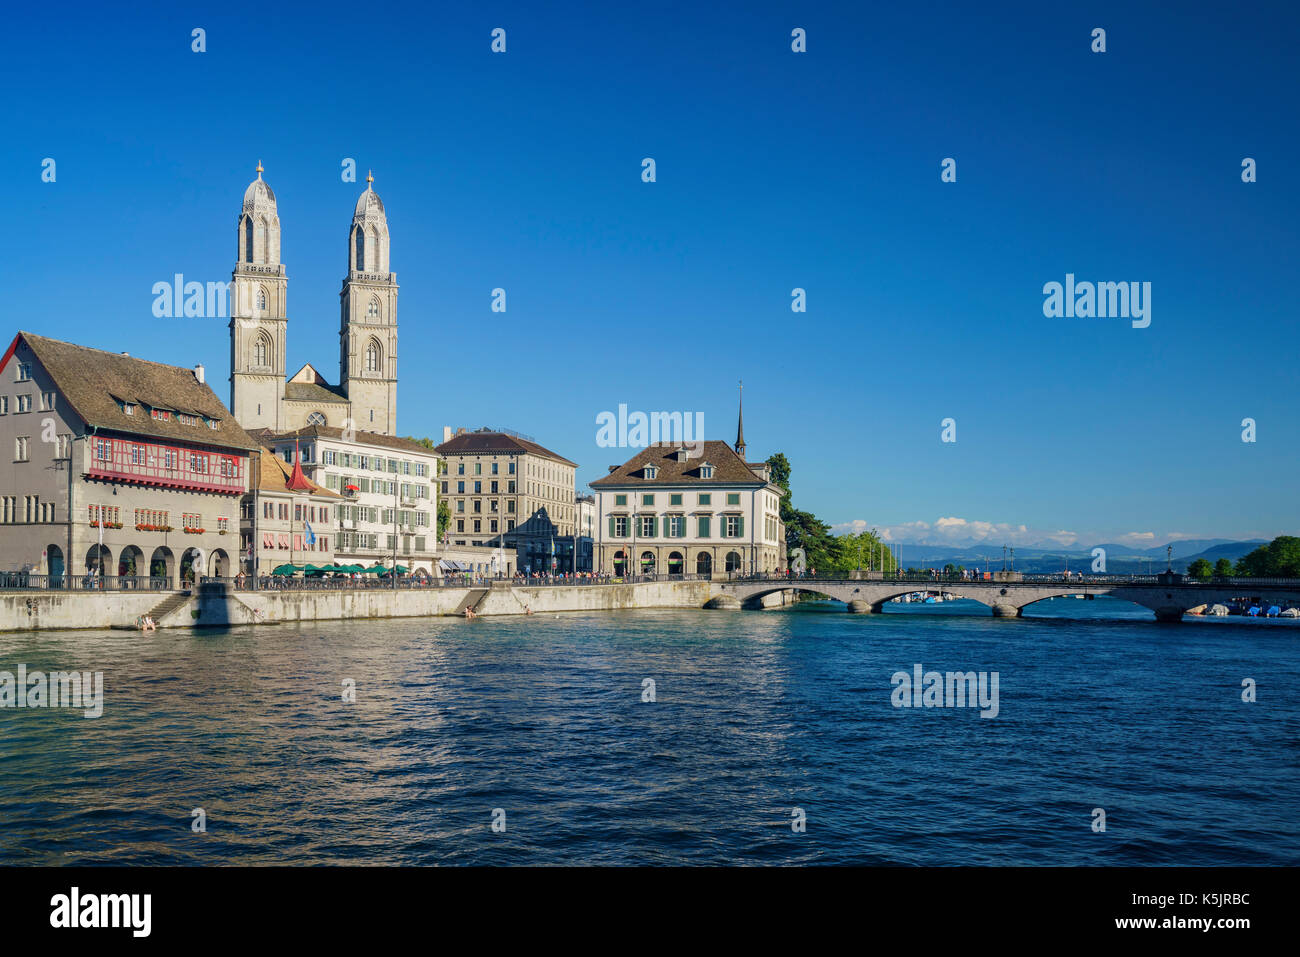 Afternoon cityscape with Great Minster, Limmat river of the historical Zurich city, Switzerland - Stock Image